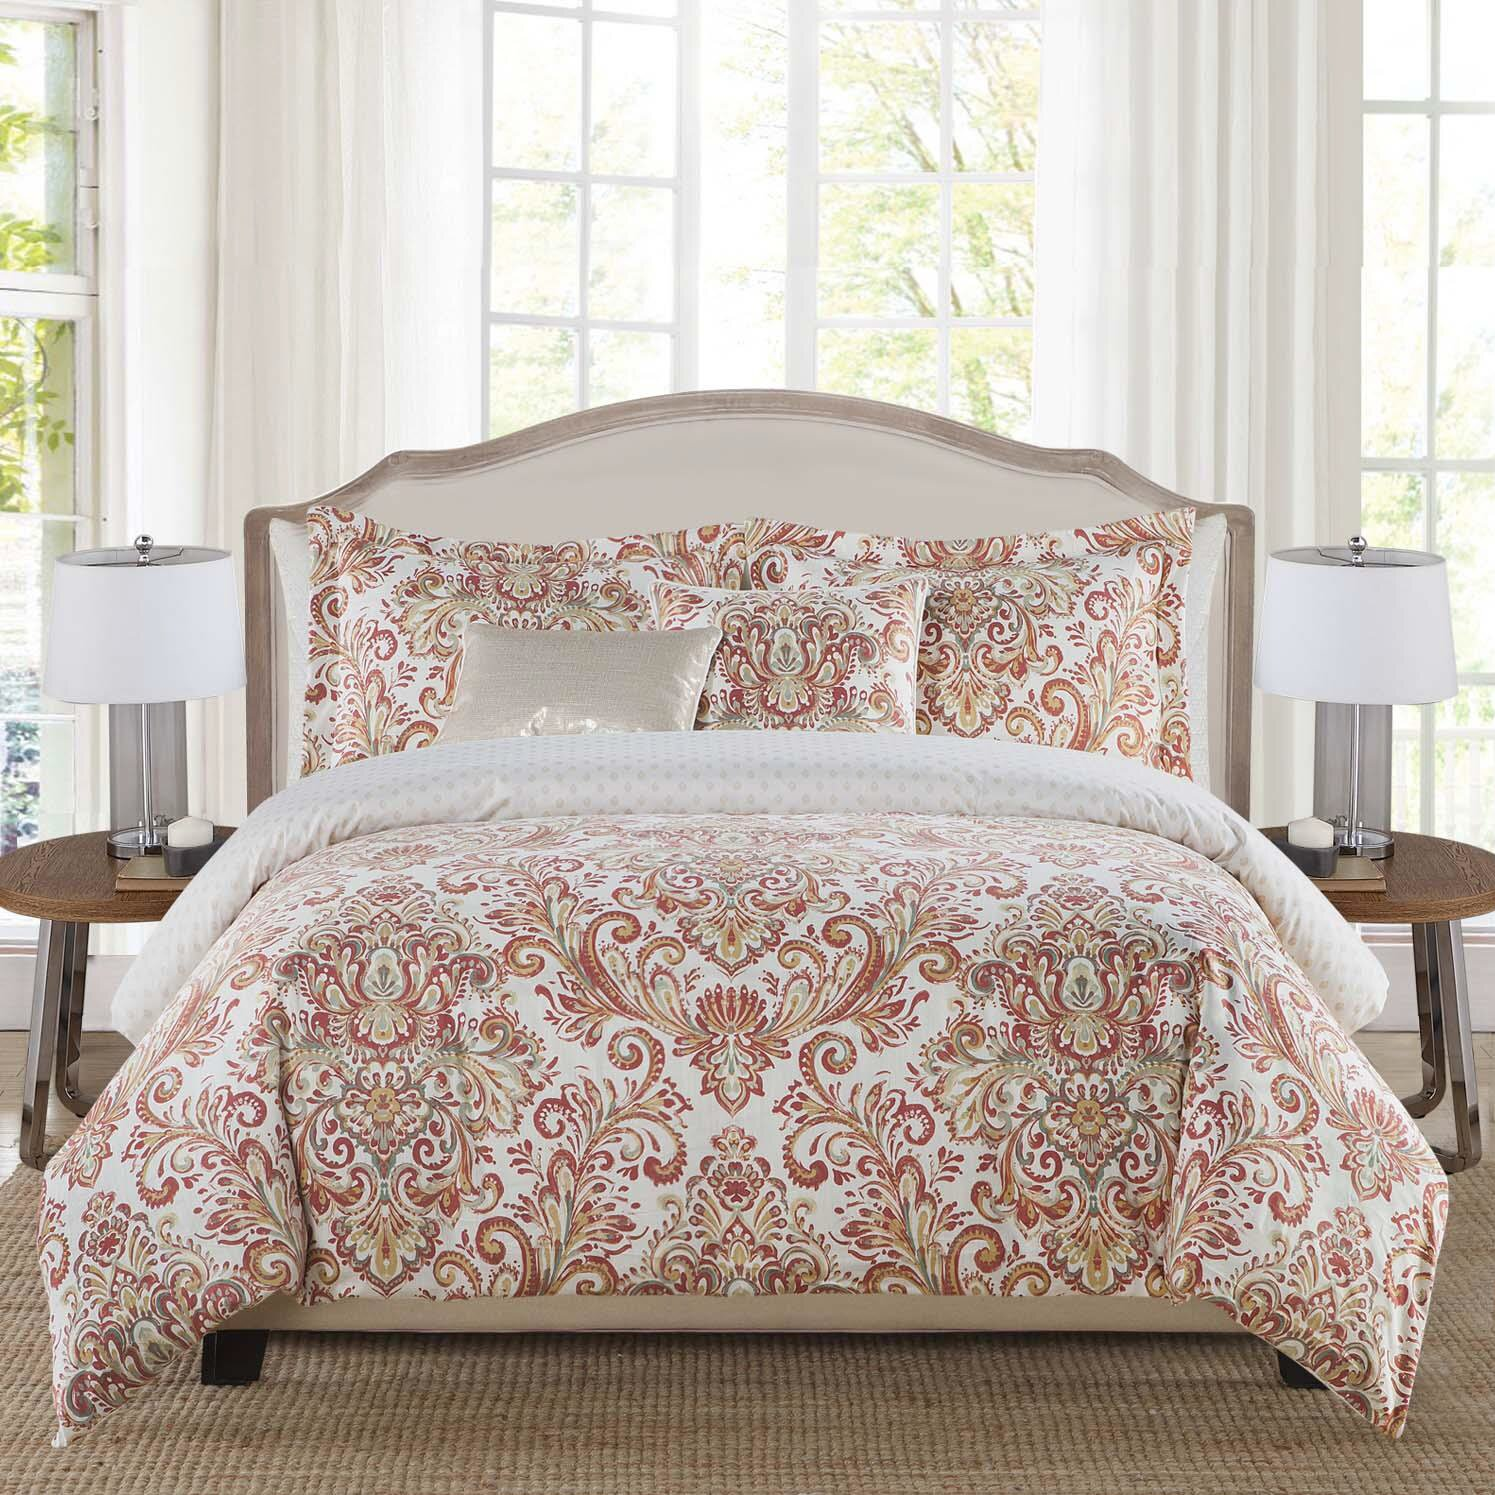 Envogue Mika 5 Piece Reversible Comforter Set Wayfair